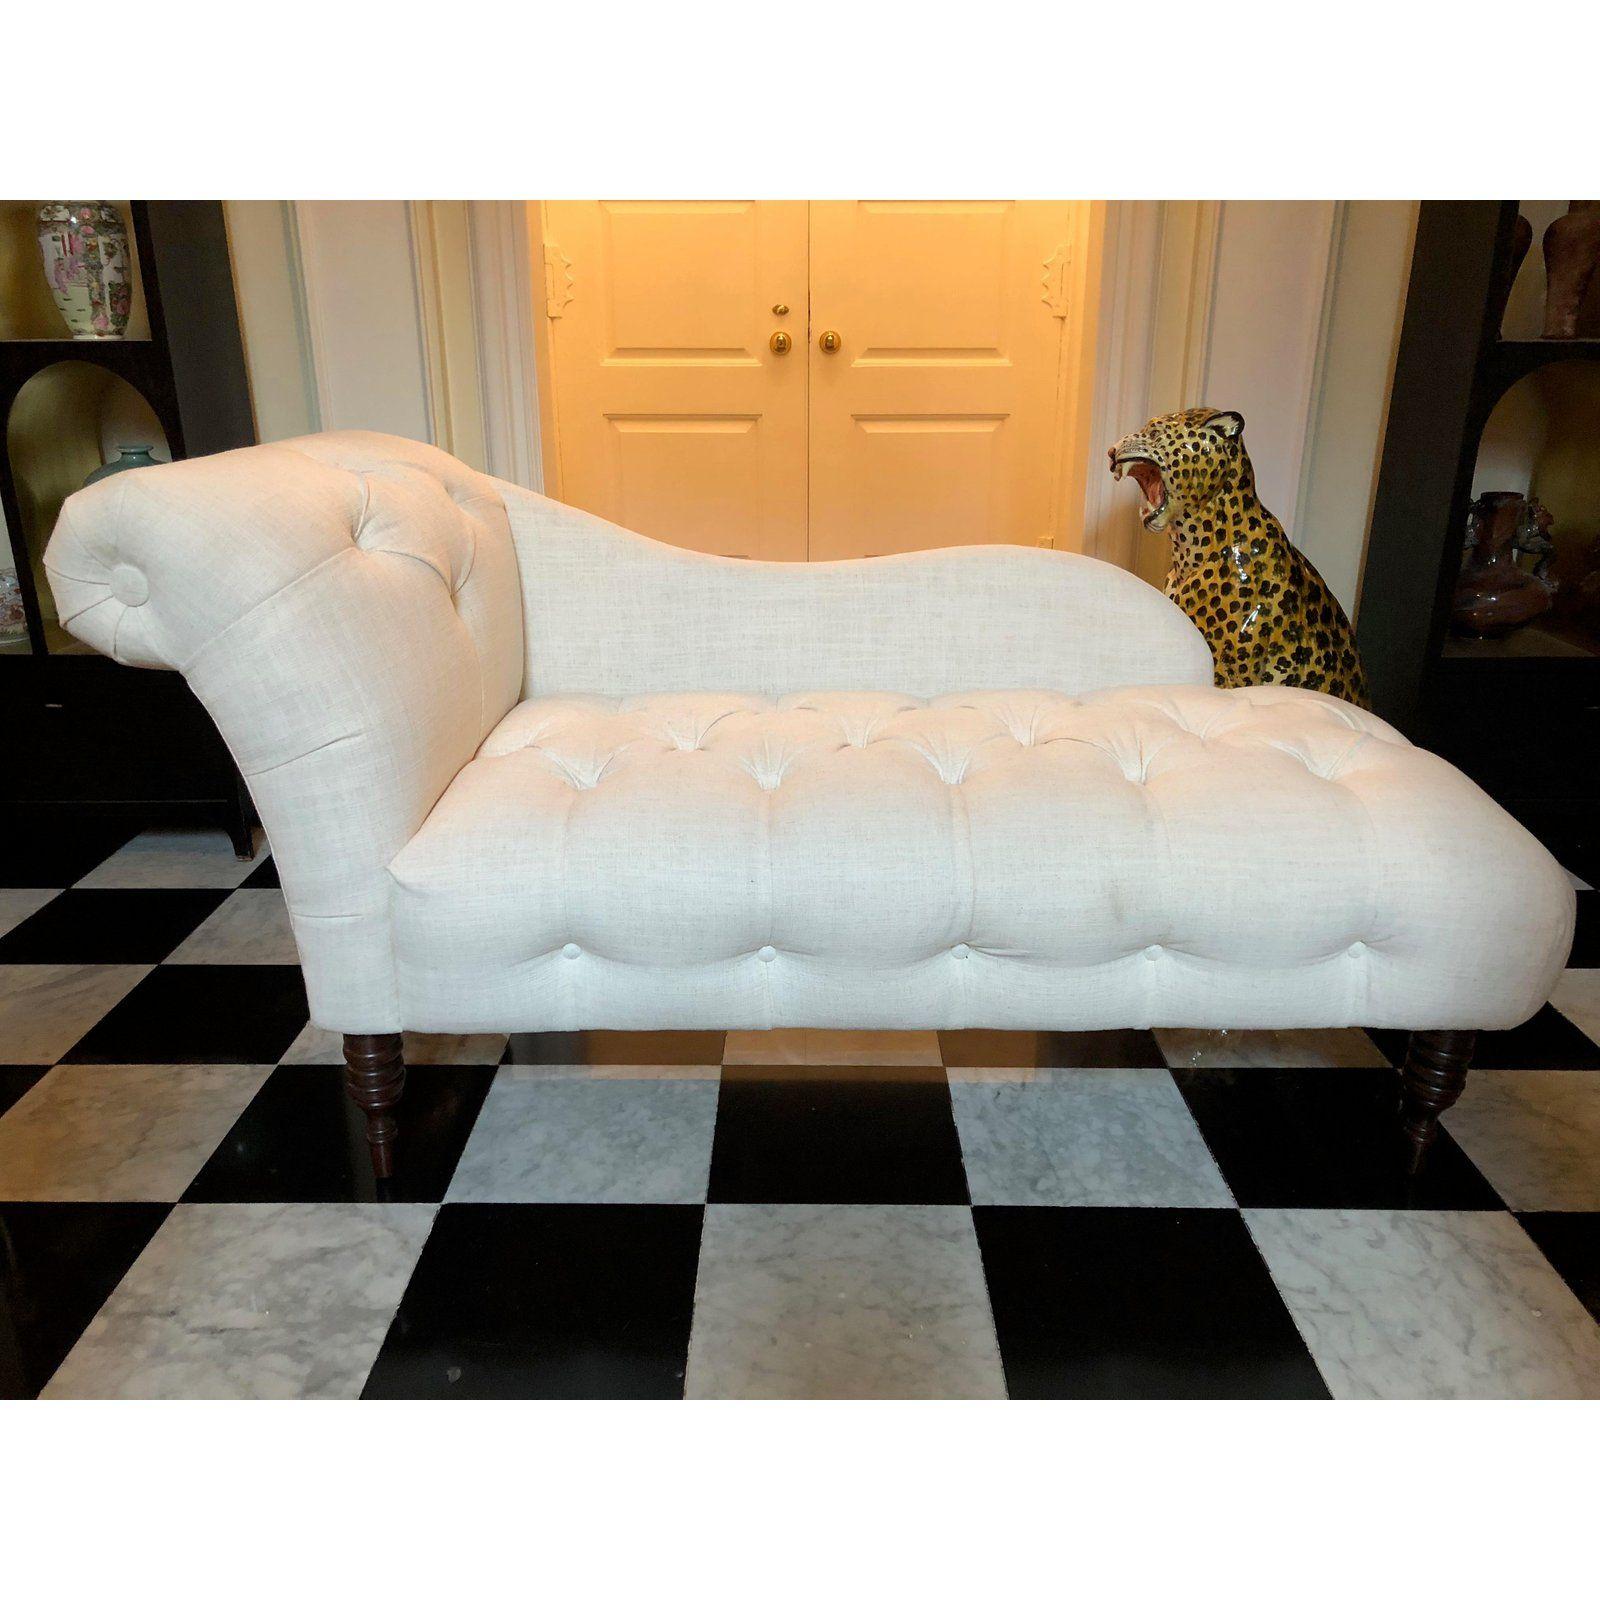 White Linen Tufted Upholstered Chaise Lounge Chaise Pinterest